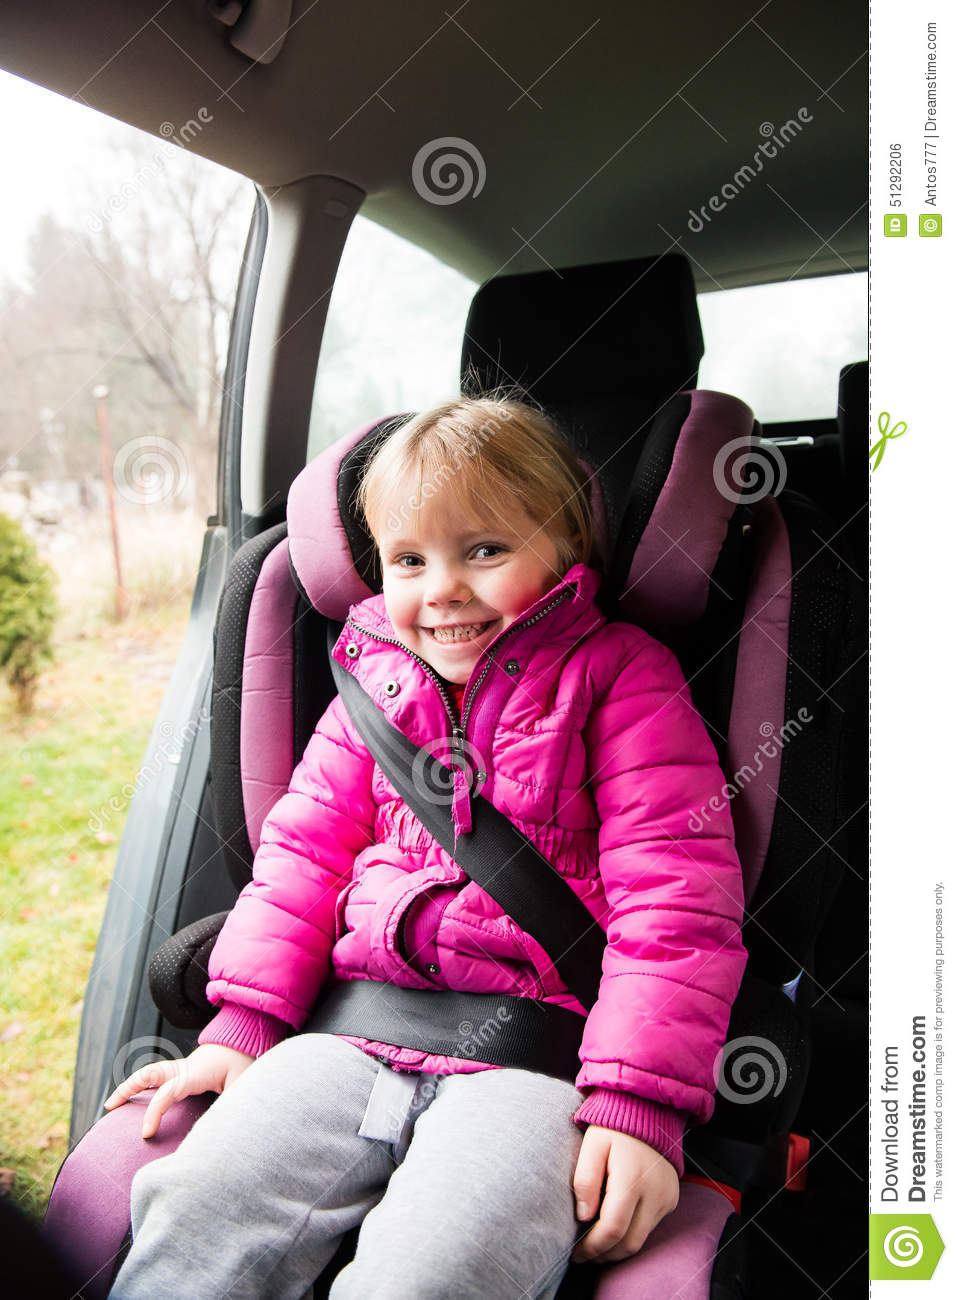 Child Car Seat Jacket Little Girl In A Car Seat Stock Photo Image Of Rest